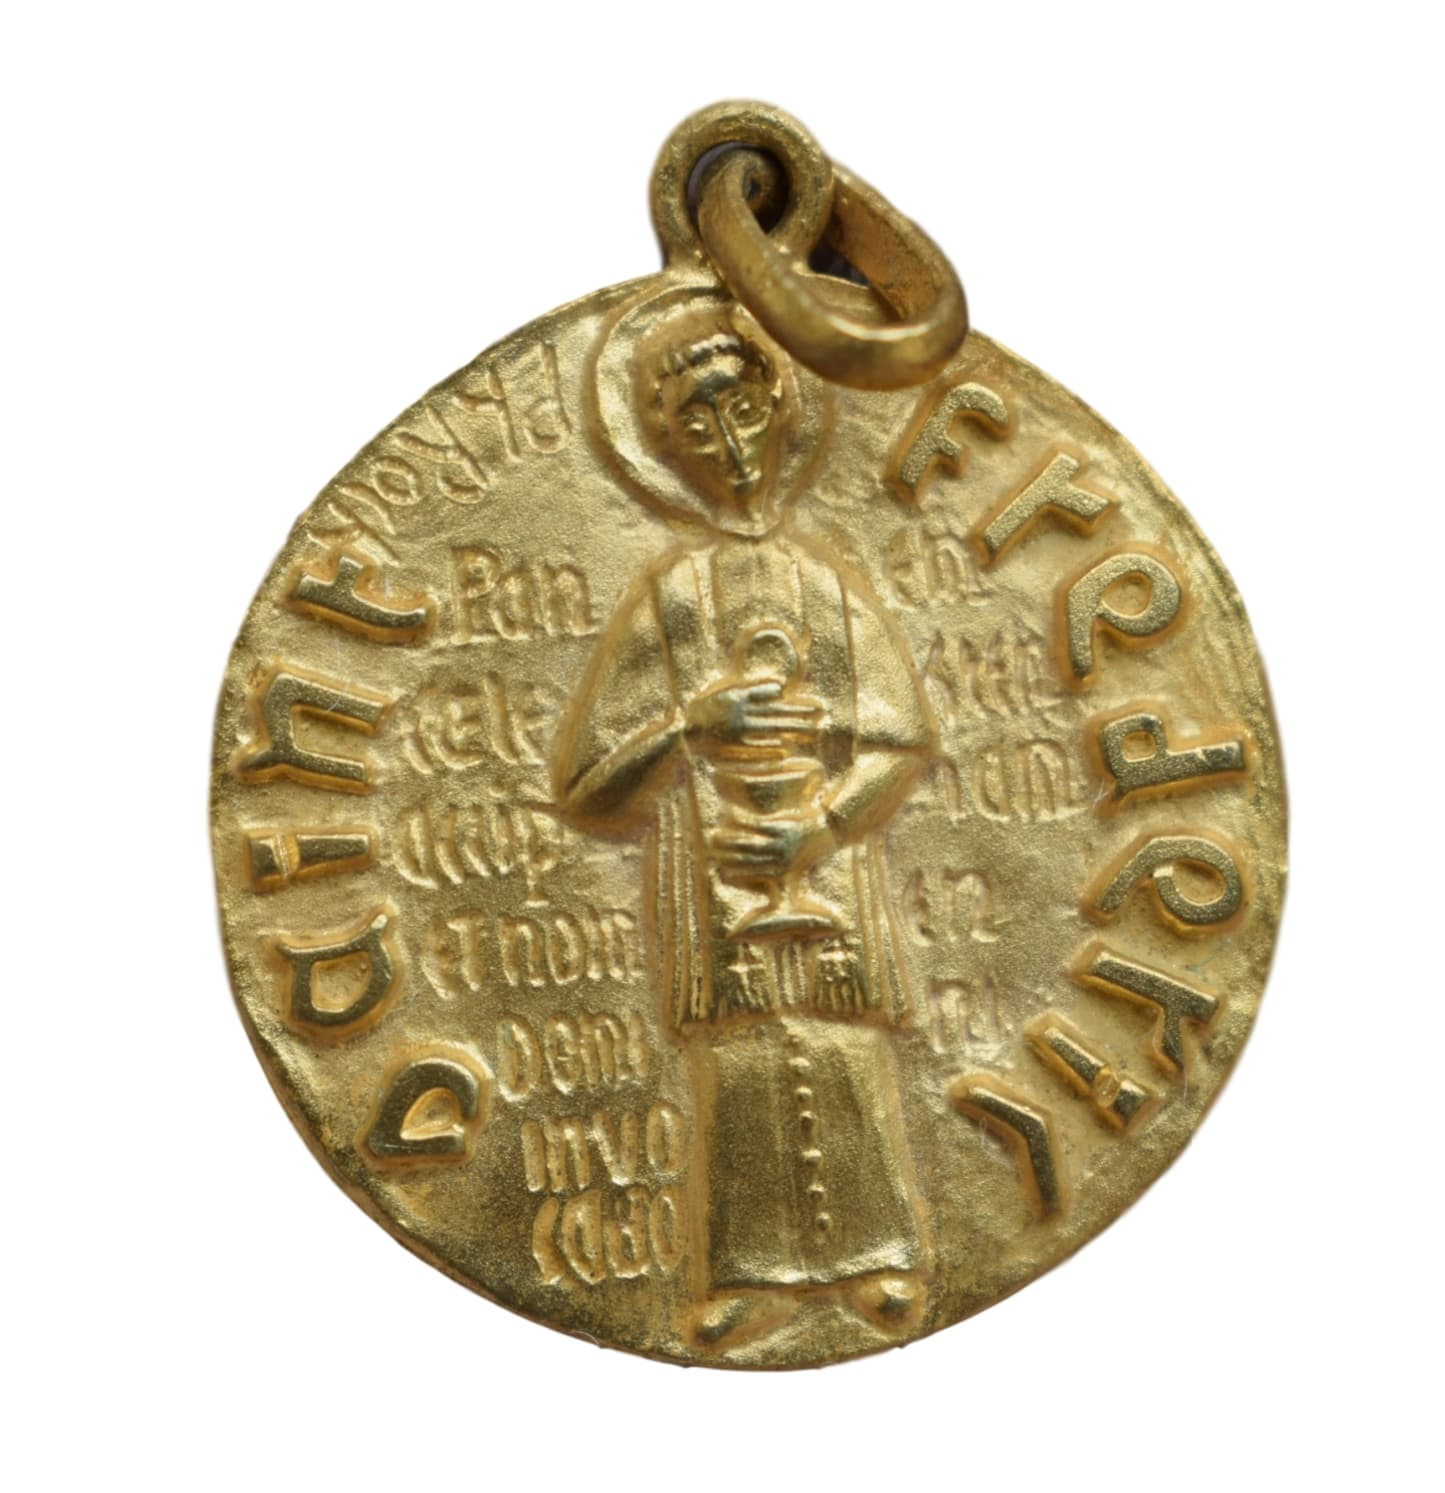 Saint Frederic Freddy of Utrecht Medal - French Religious Vintage Gold Medal Pendant Charm by Philippe Roch - Modernist Design